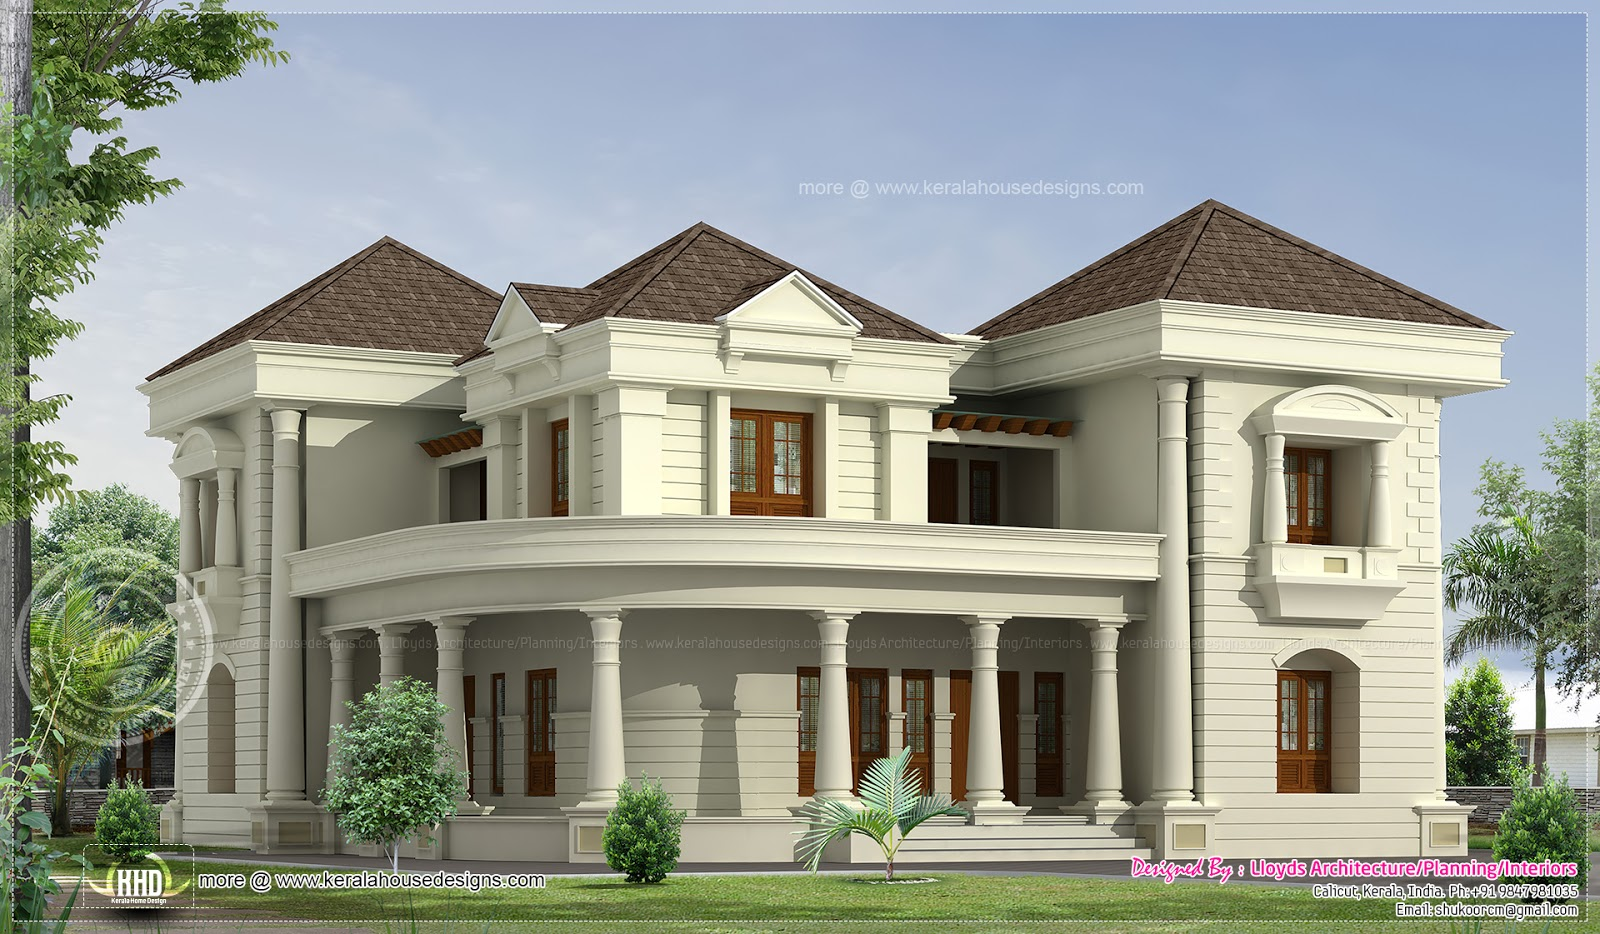 . Bungalow floor plan and 3D View - Kerala home design and floor plans